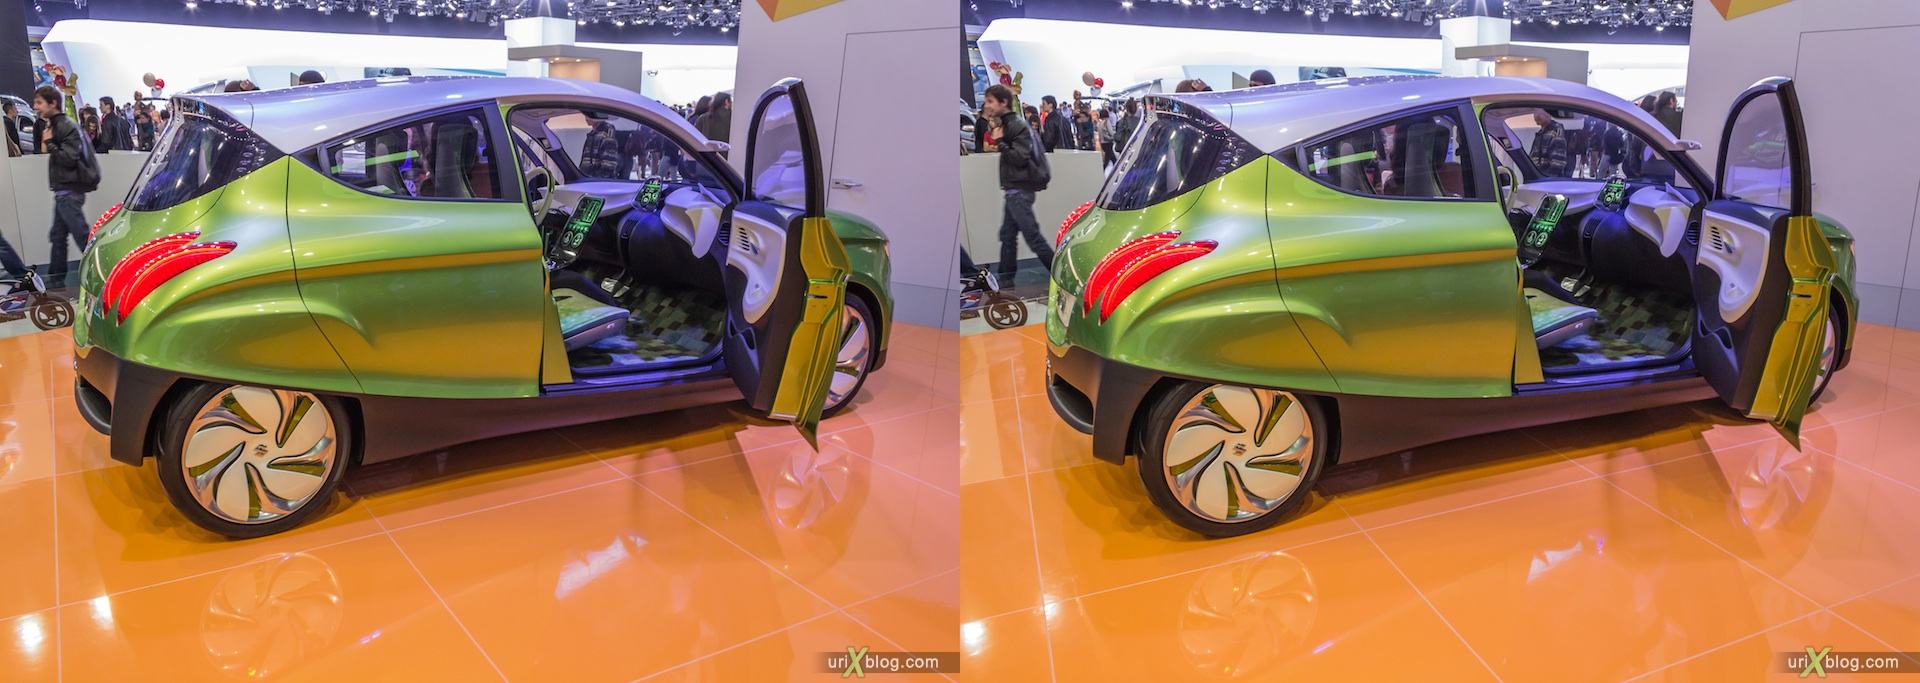 2012, Suzuki G70, Moscow International Automobile Salon, auto show, 3D, stereo pair, cross-eyed, crossview